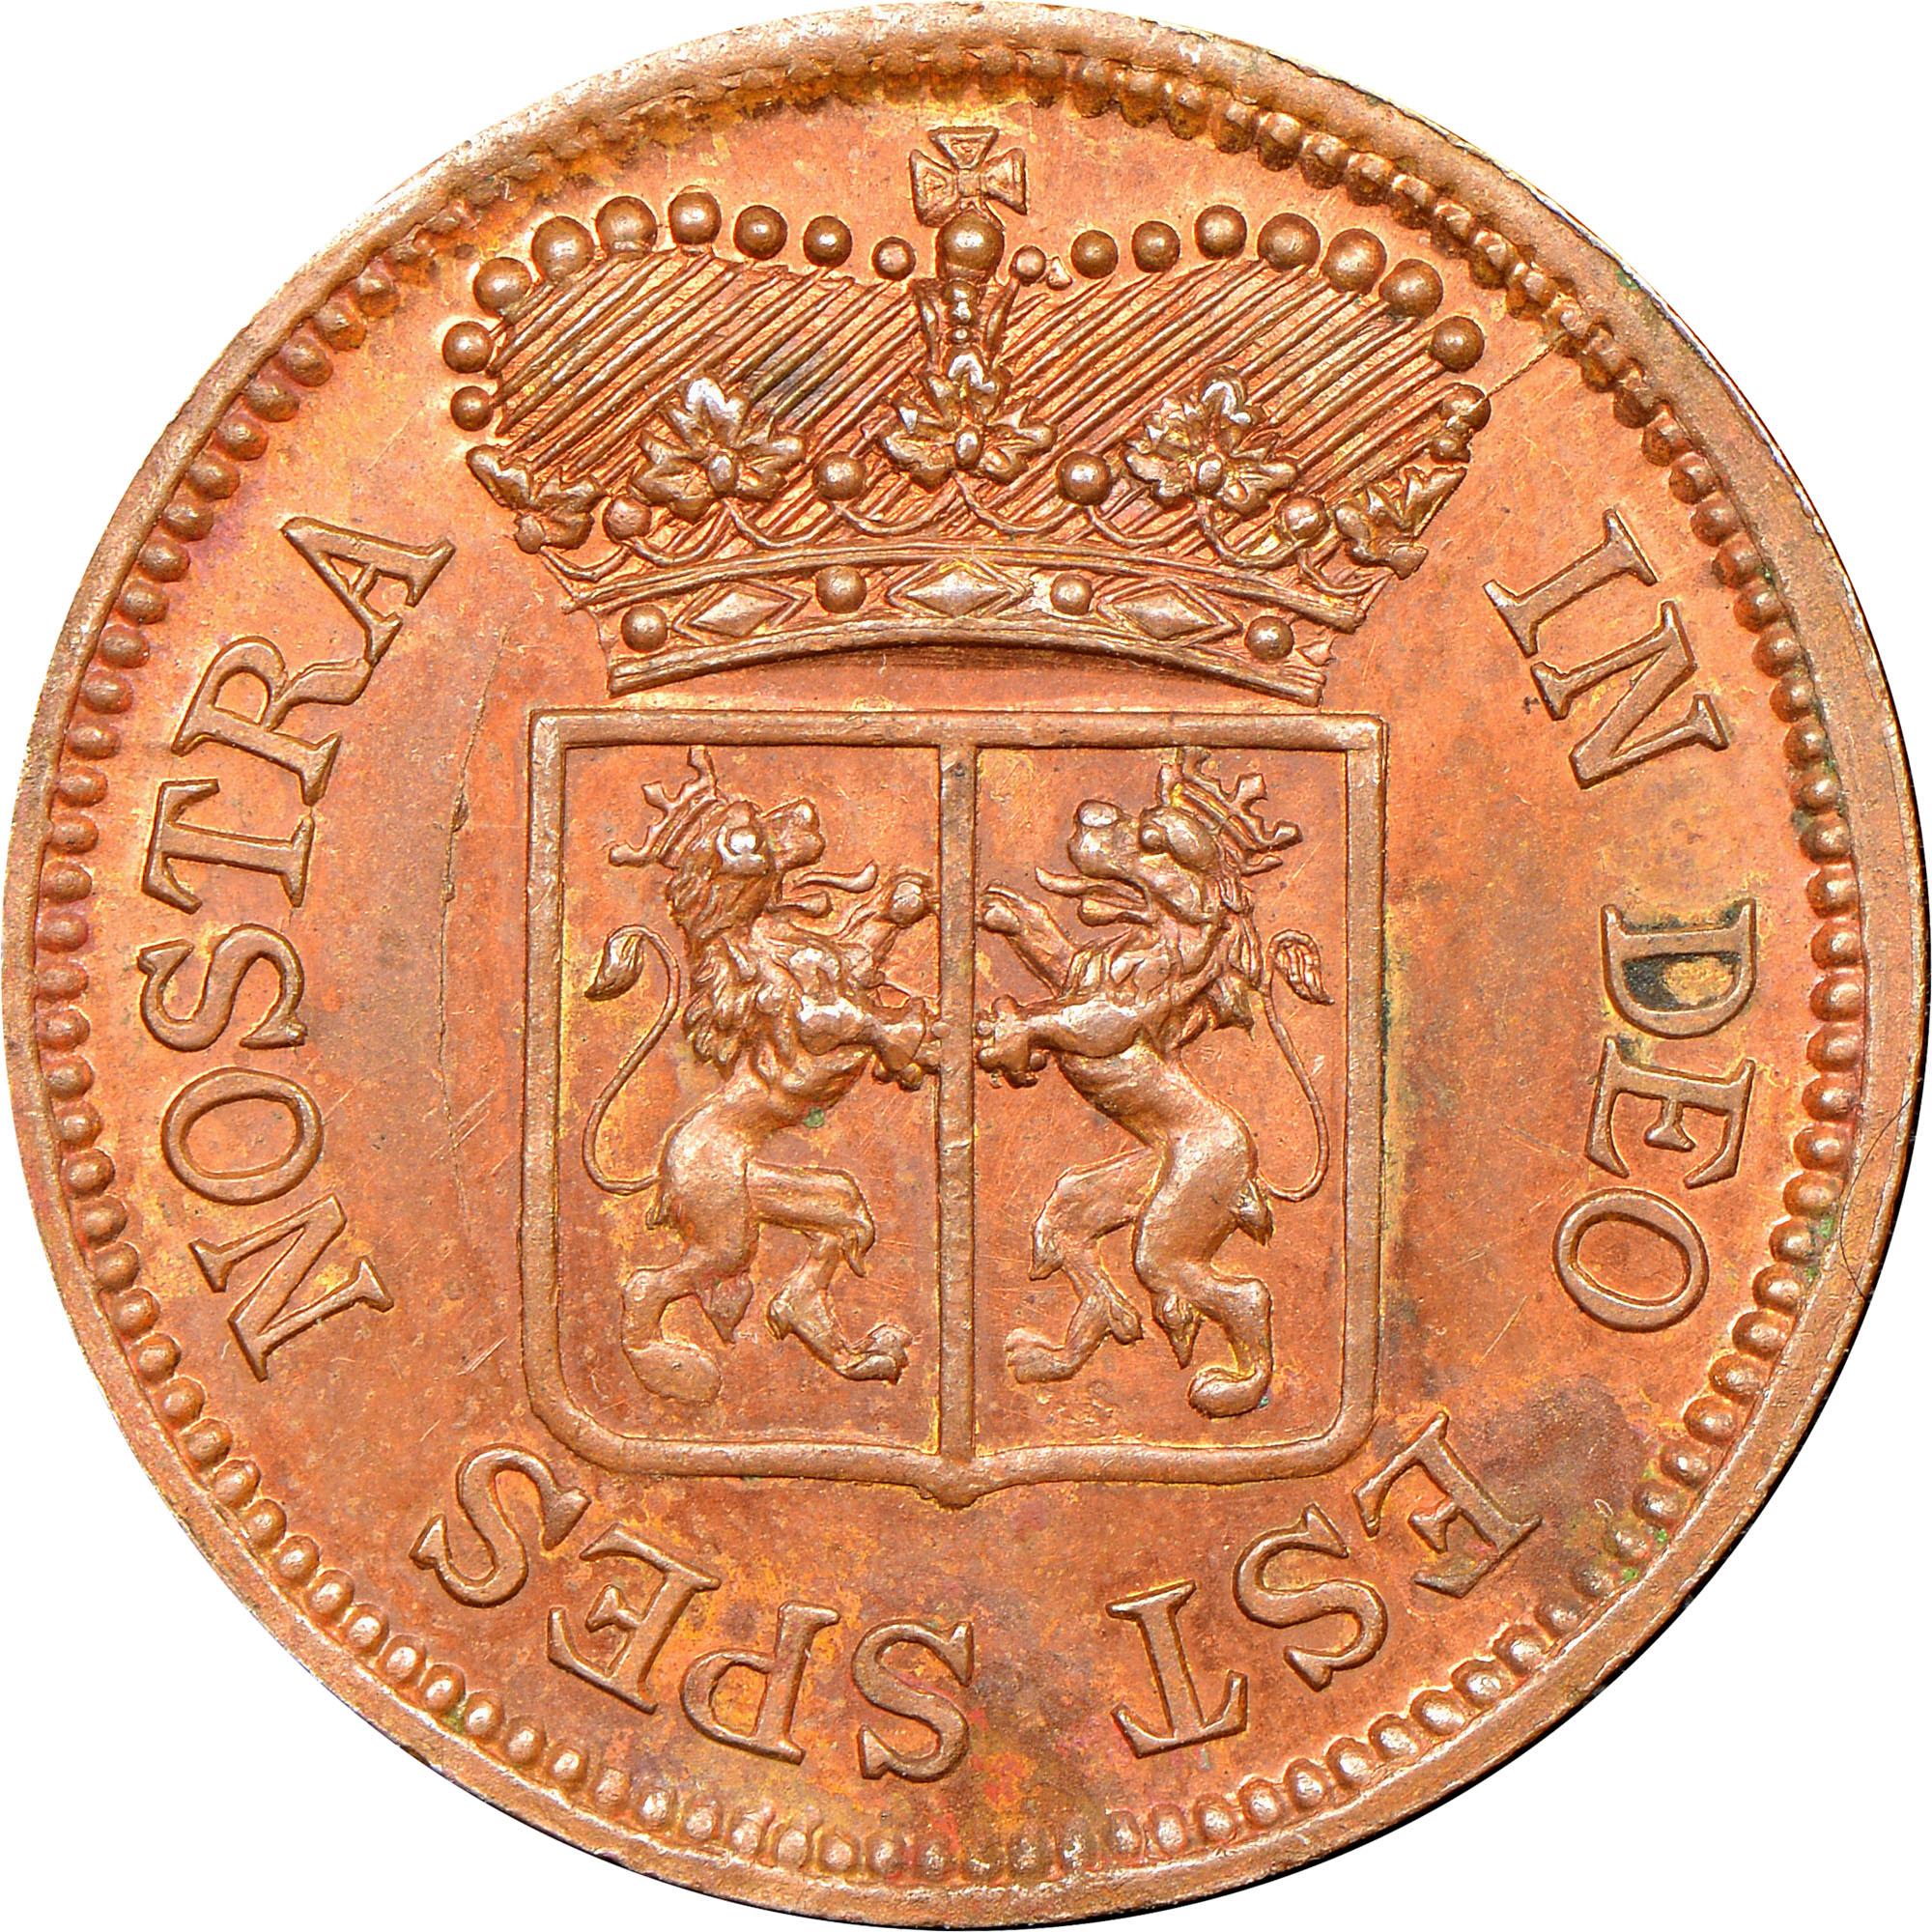 Netherlands East Indies Duit obverse